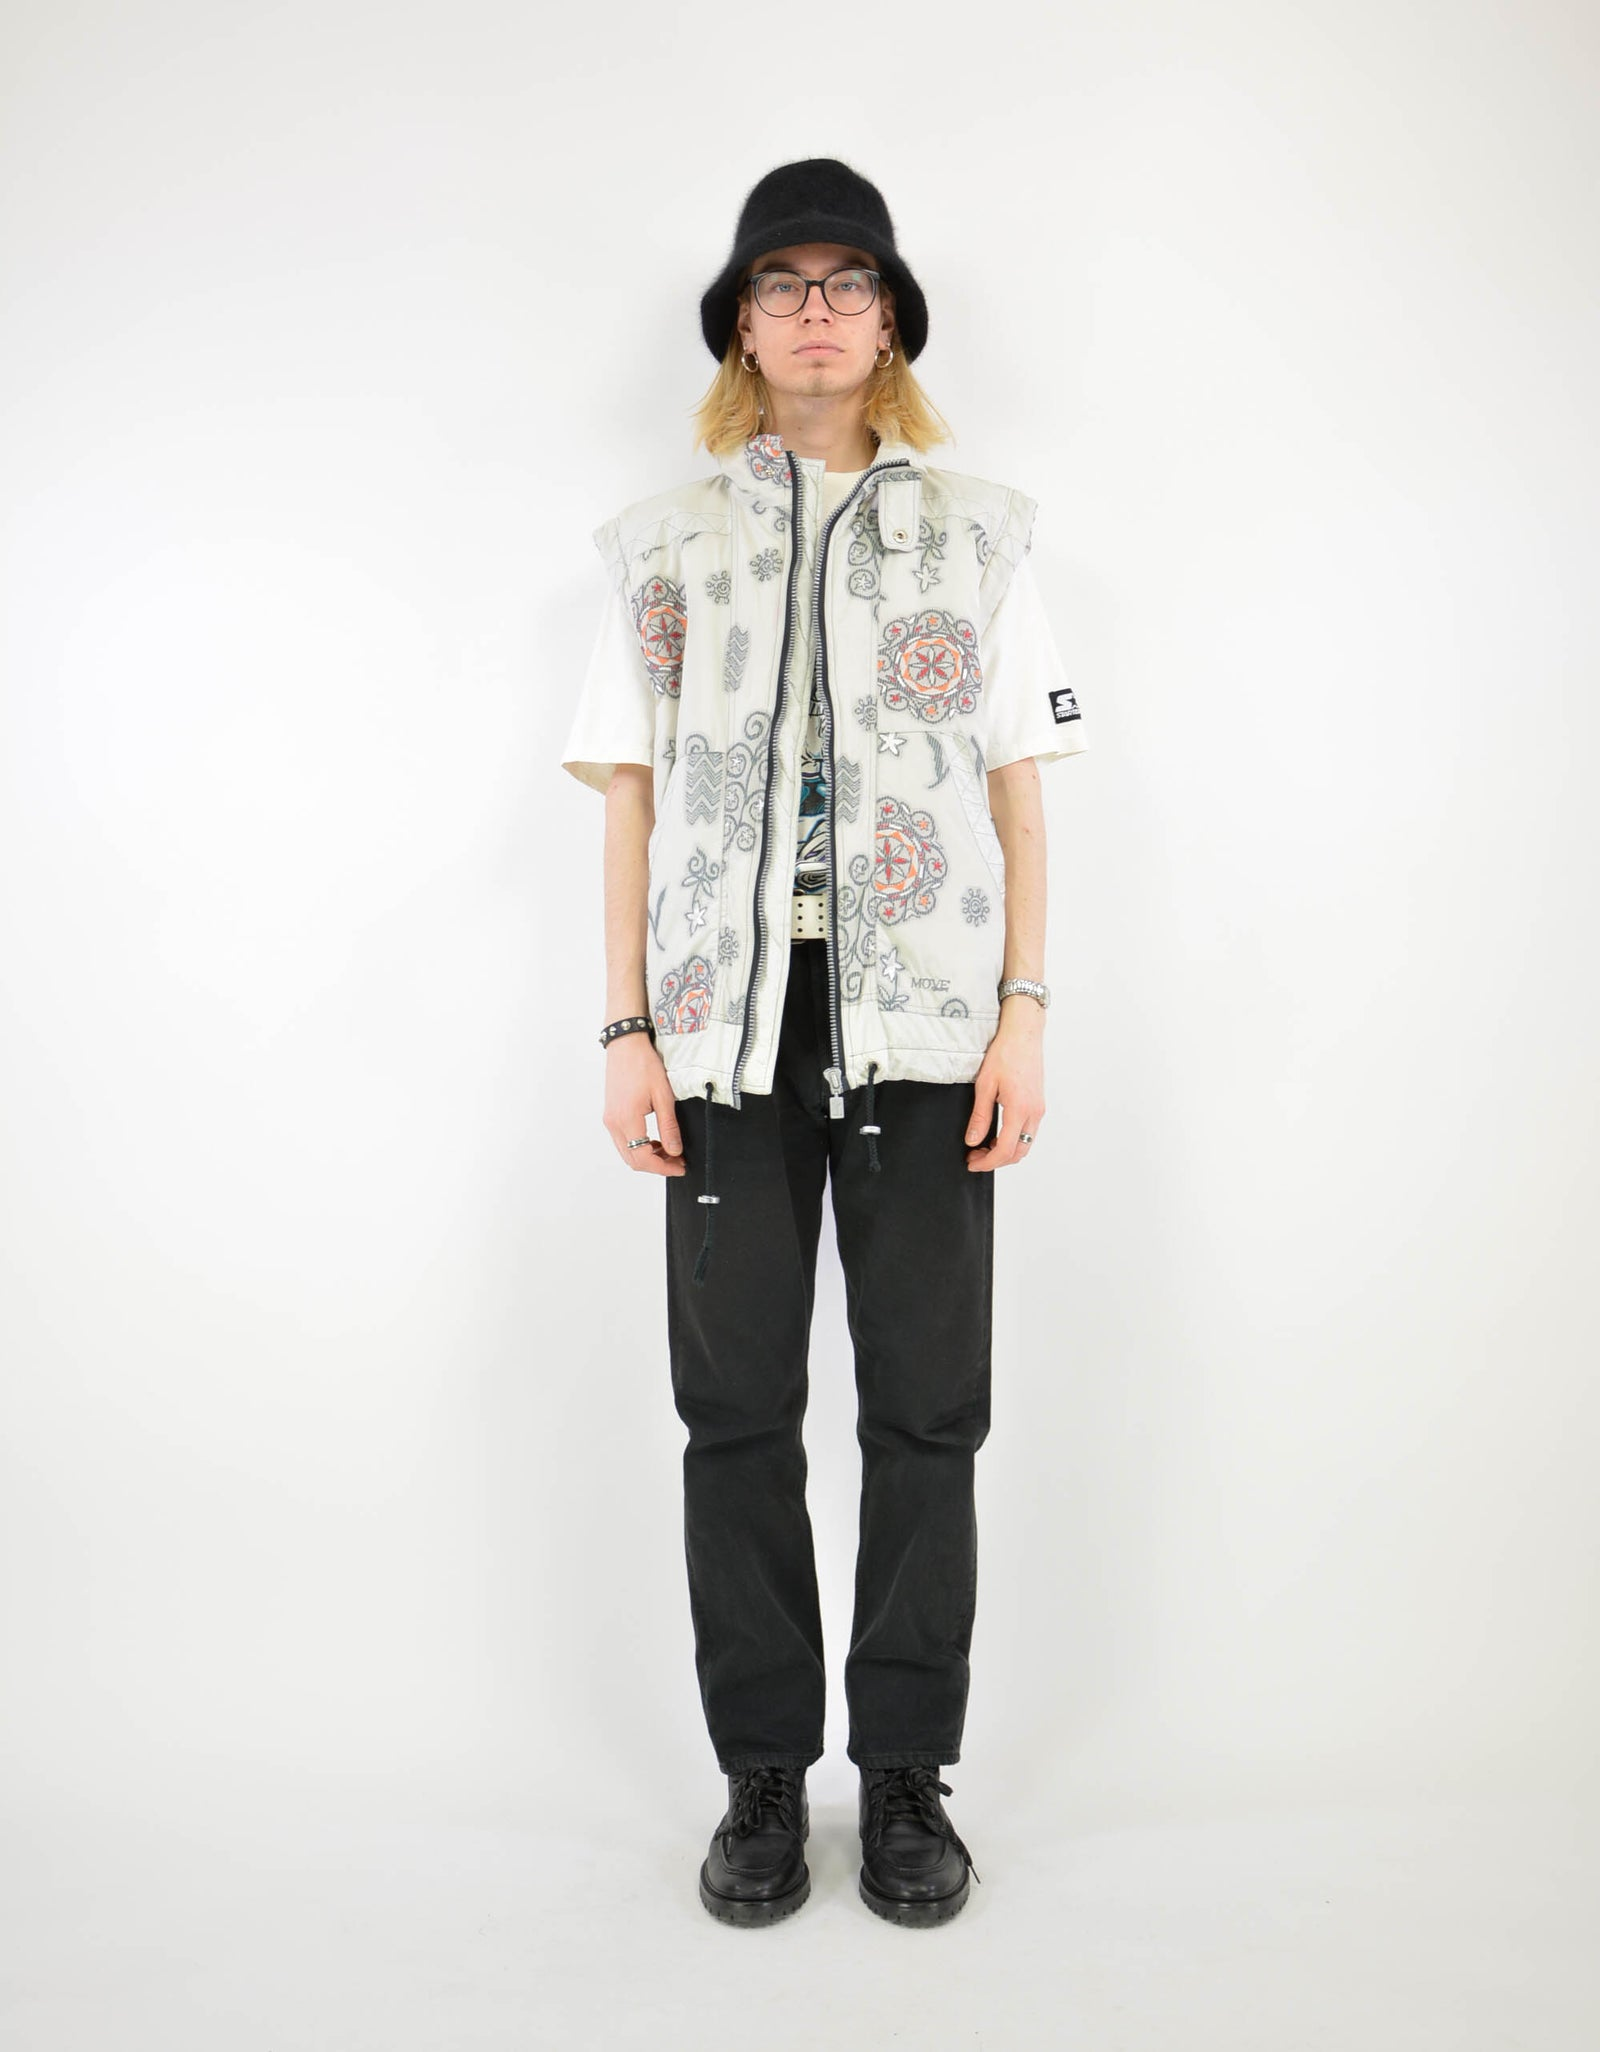 Embroidered vest - PICKNWEIGHT - VINTAGE KILO STORE